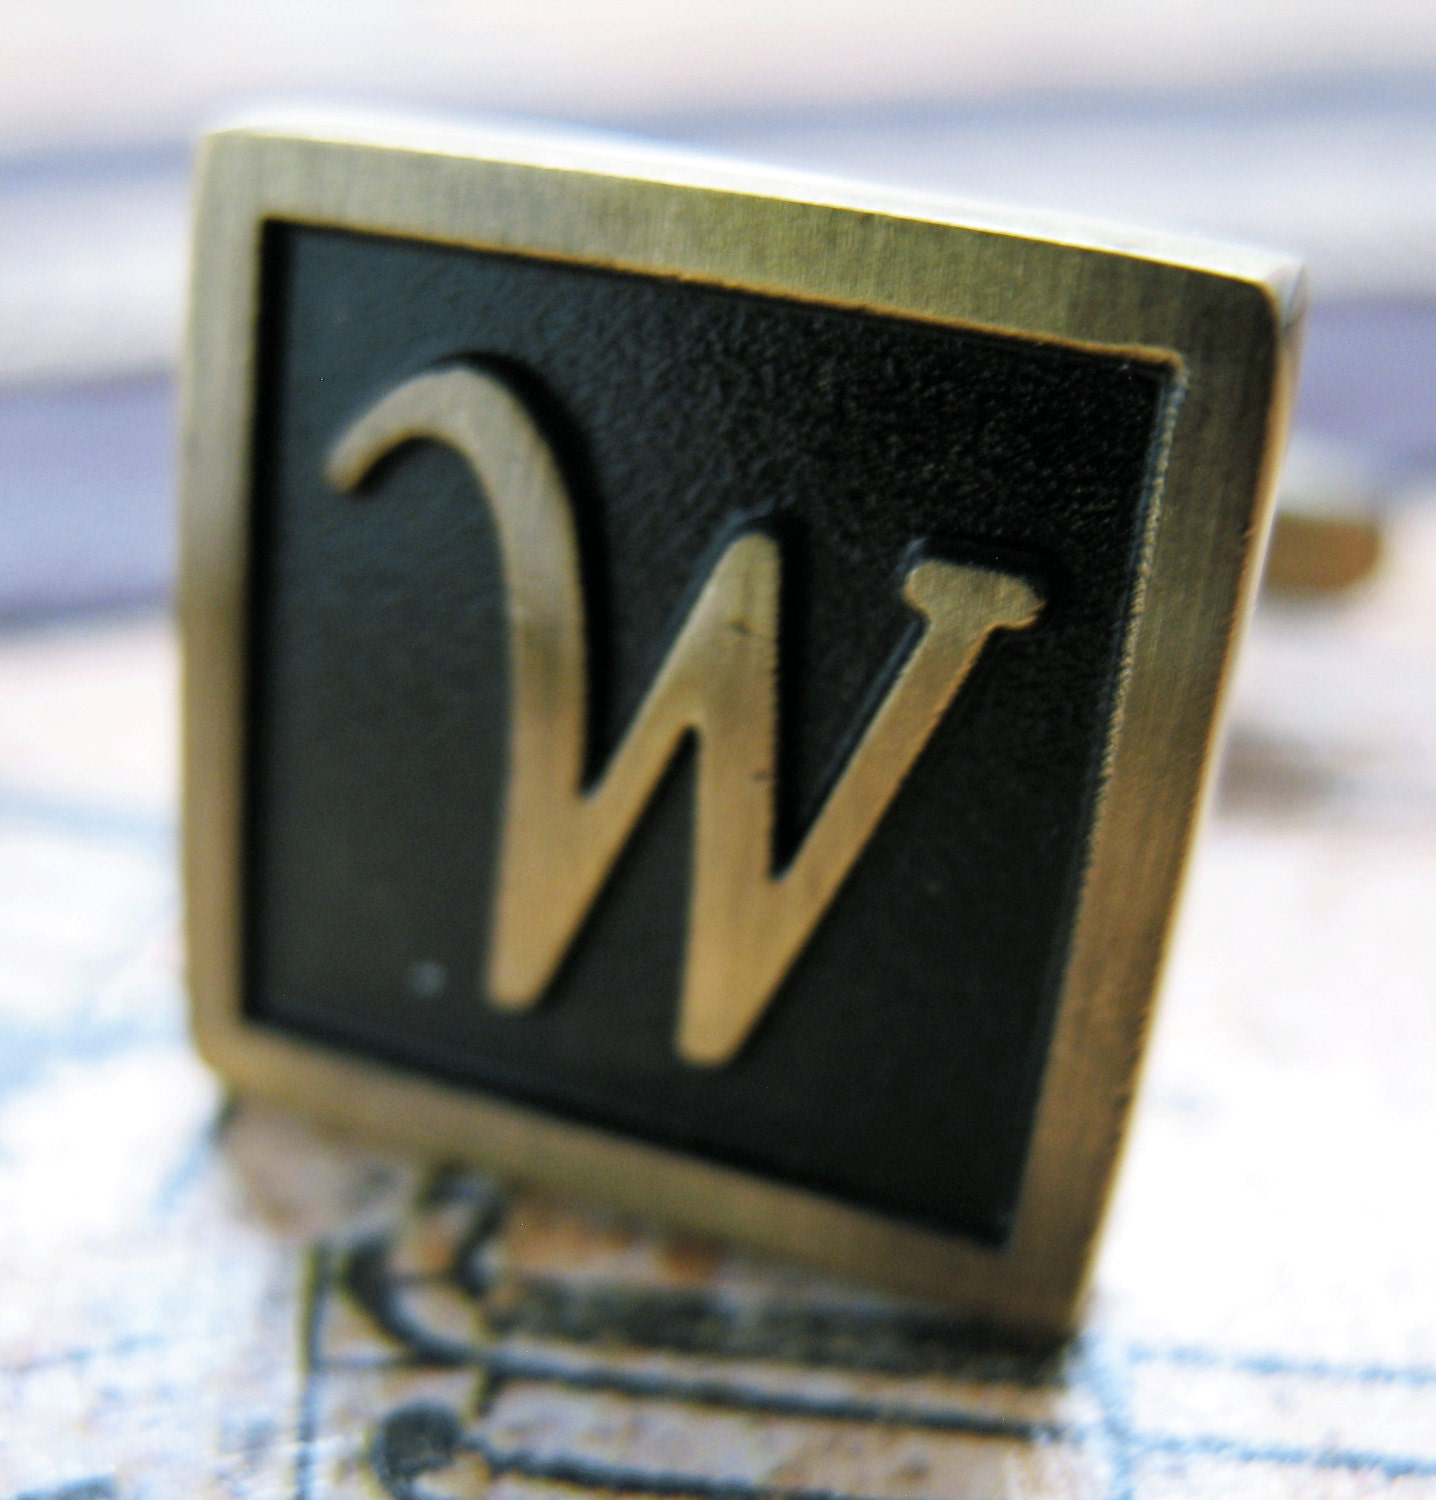 w initial cufflinks antique brass square 3 d letter vintage english lettering cuff links groom